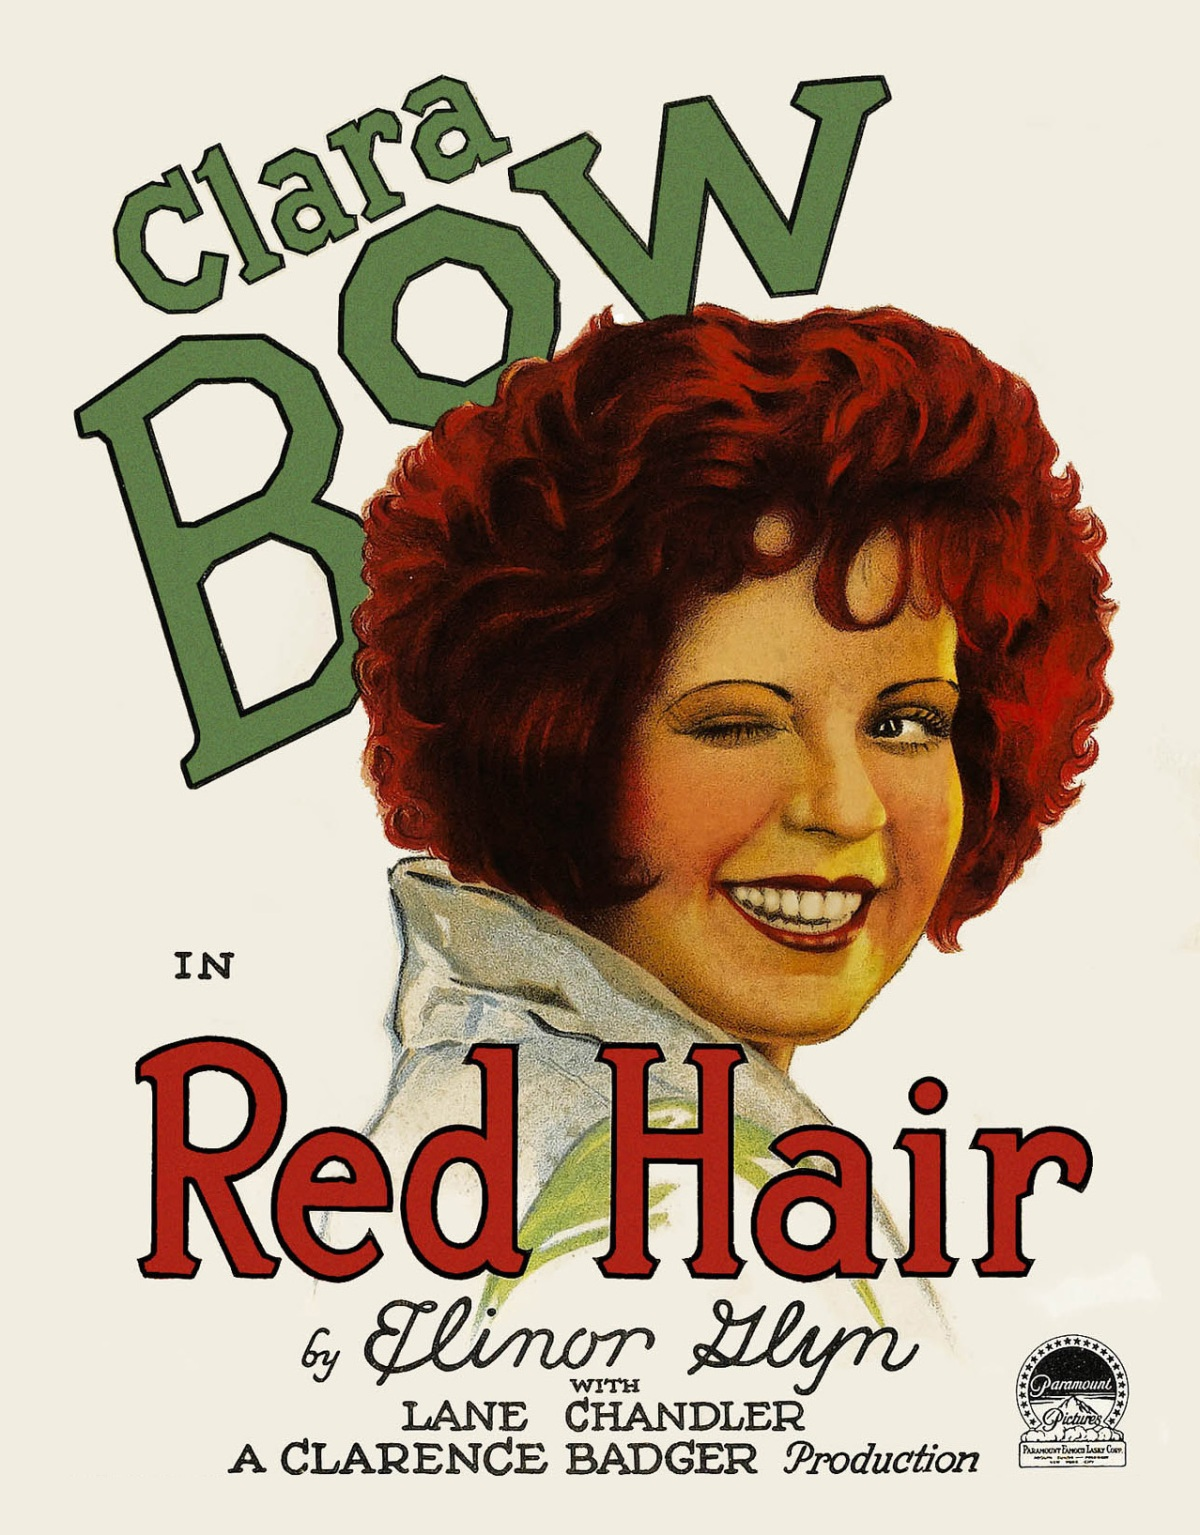 http://verdoux.files.wordpress.com/2008/03/red-hair-1928.jpg?w=1200